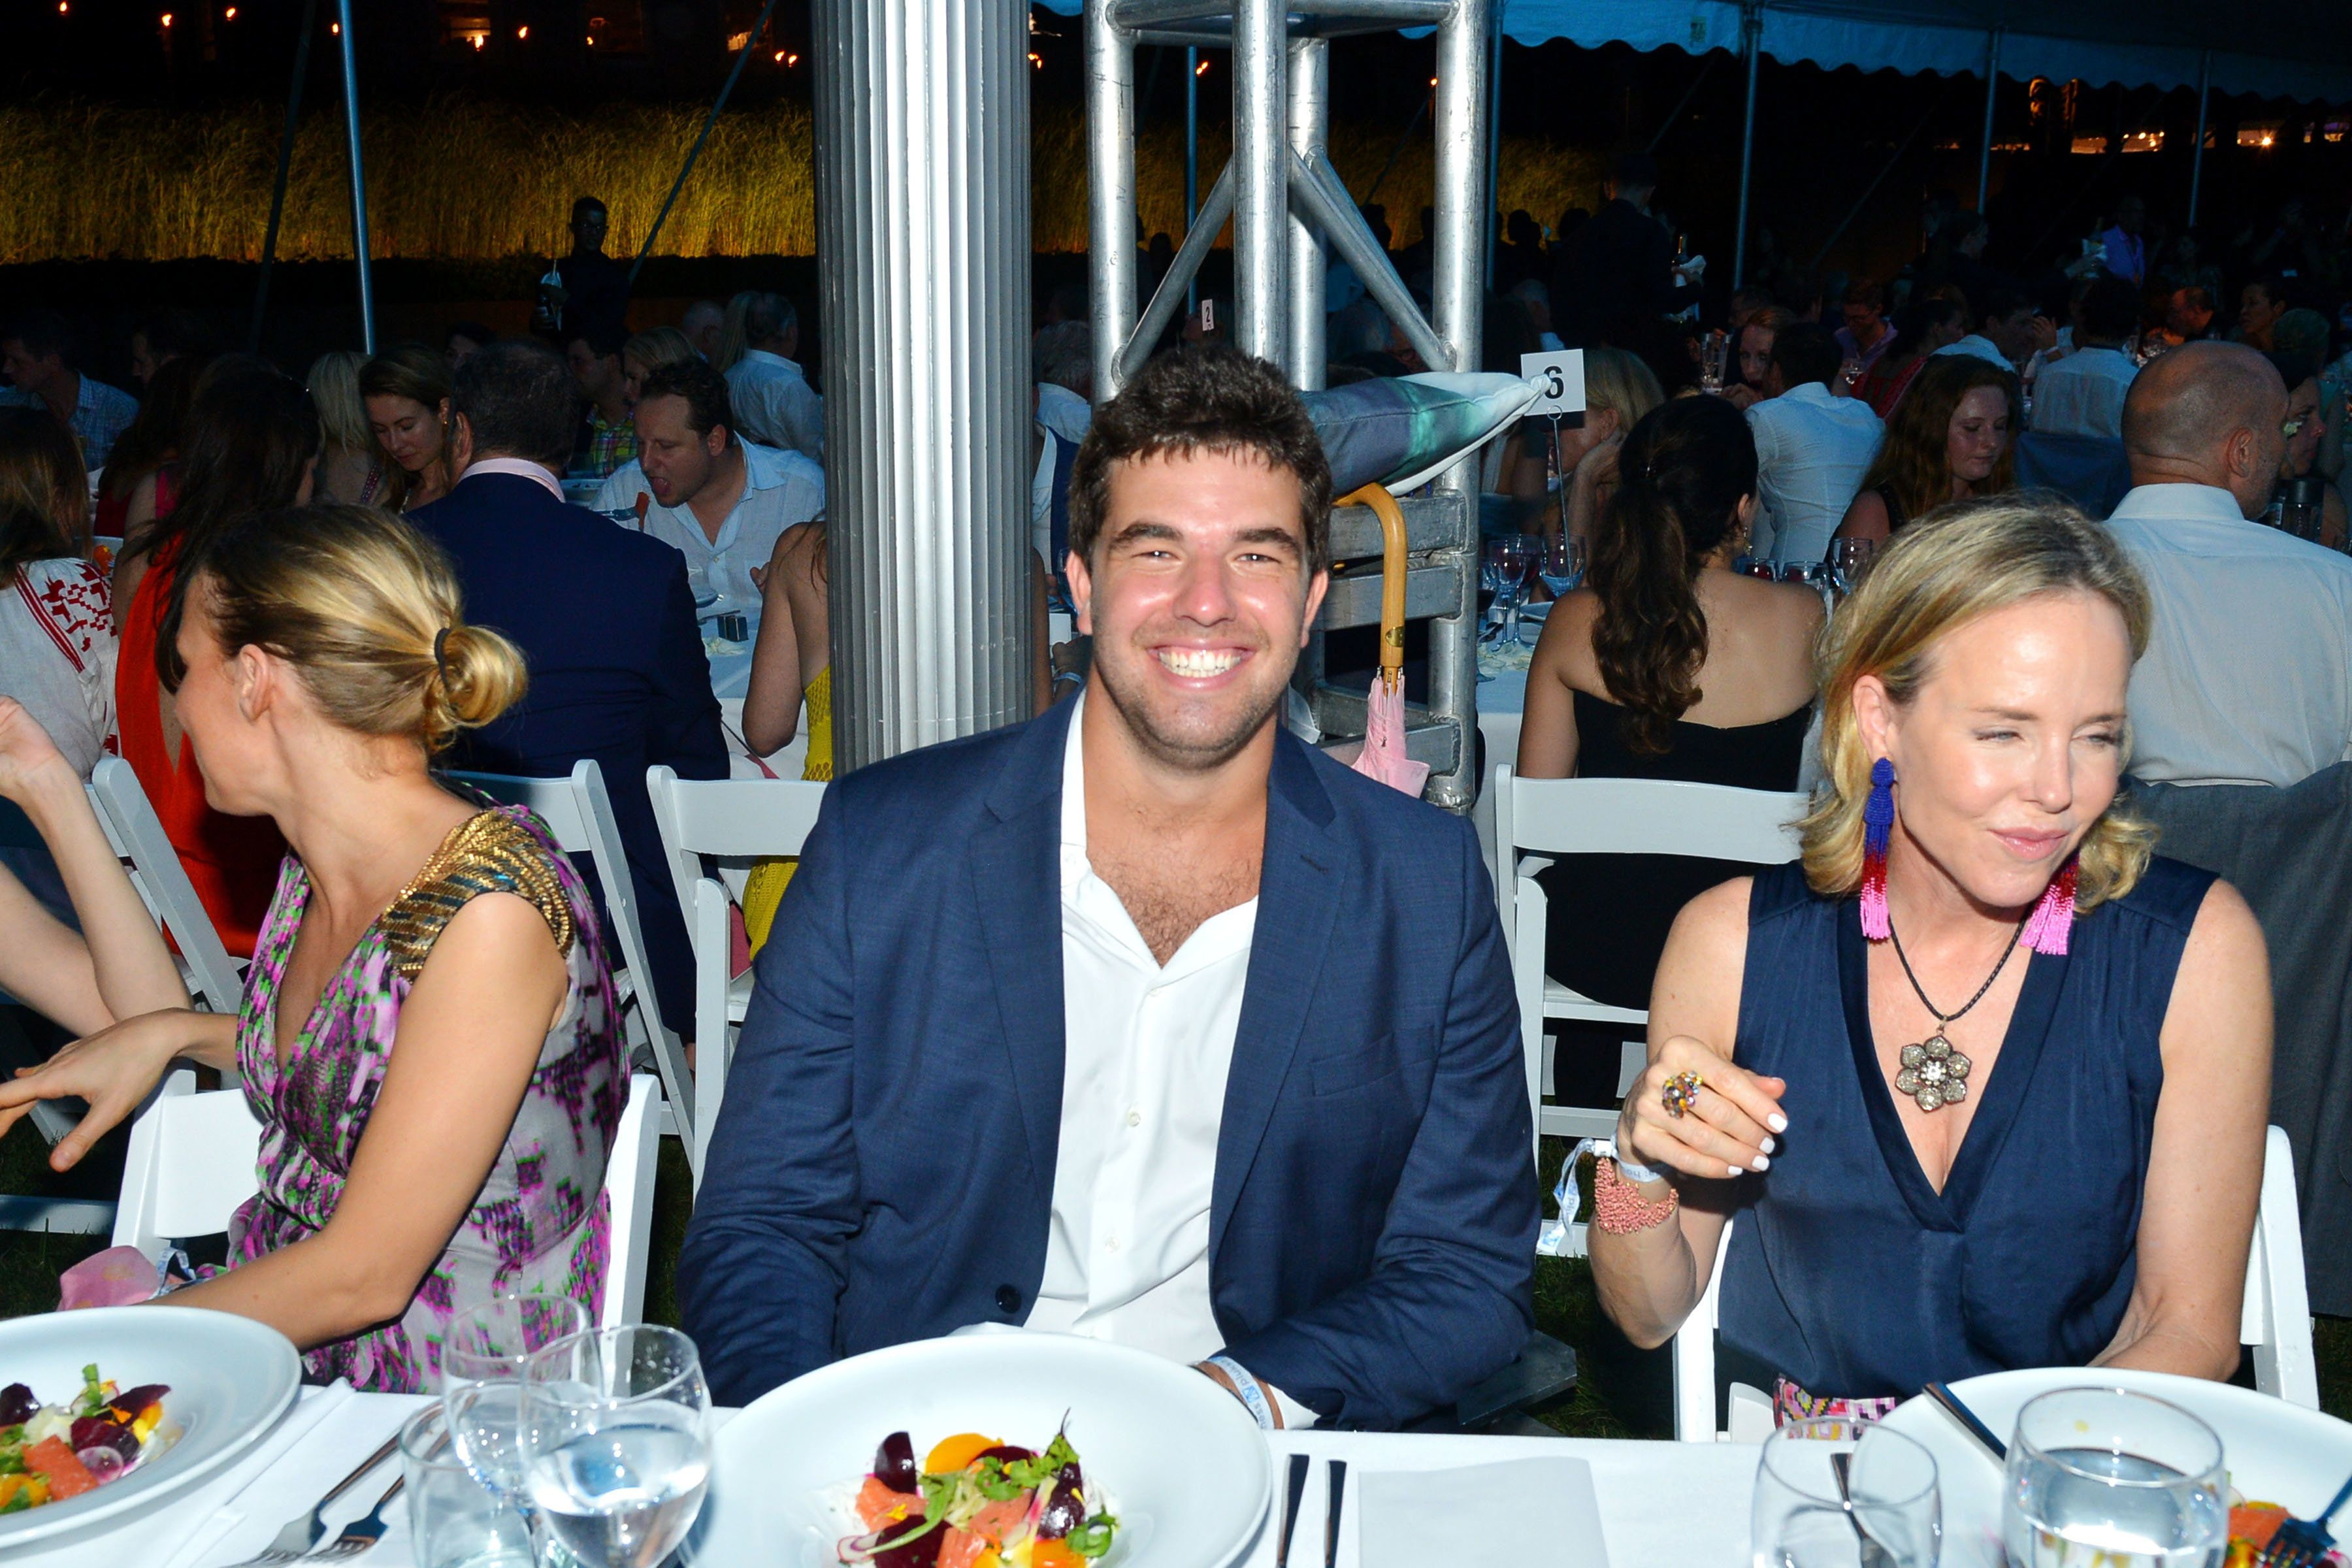 WATER MILL, NY - JULY 30: Billy McFarland and Carol Mac attend The 23rd Annual Watermill Center Summer Benefit & Auction at The Watermill Center on July 30, 2016 in Water Mill, NY. (Photo by Patrick McMullan/Patrick McMullan via Getty Images)